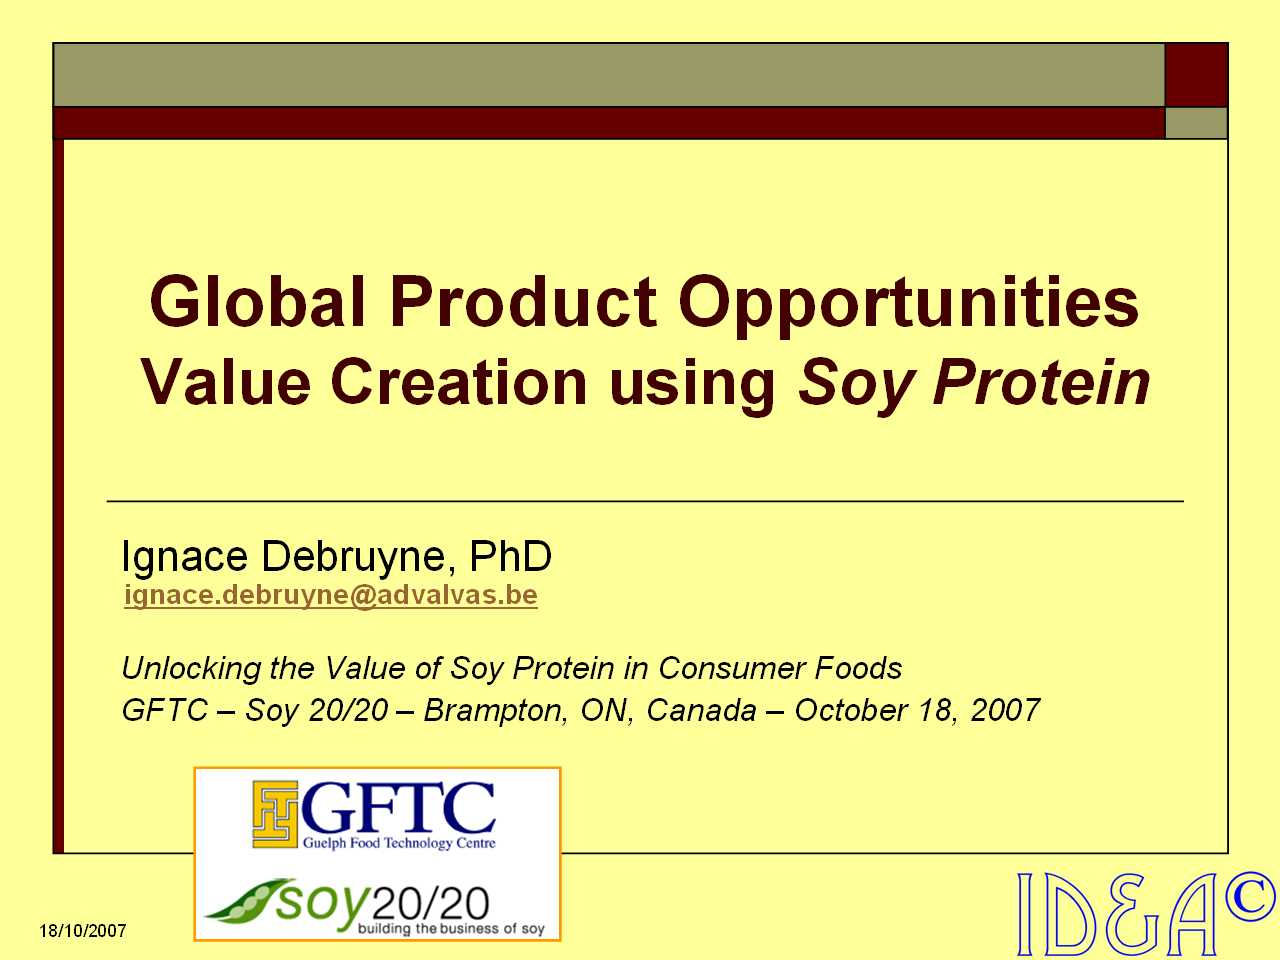 Soy Protein Market Opportunities